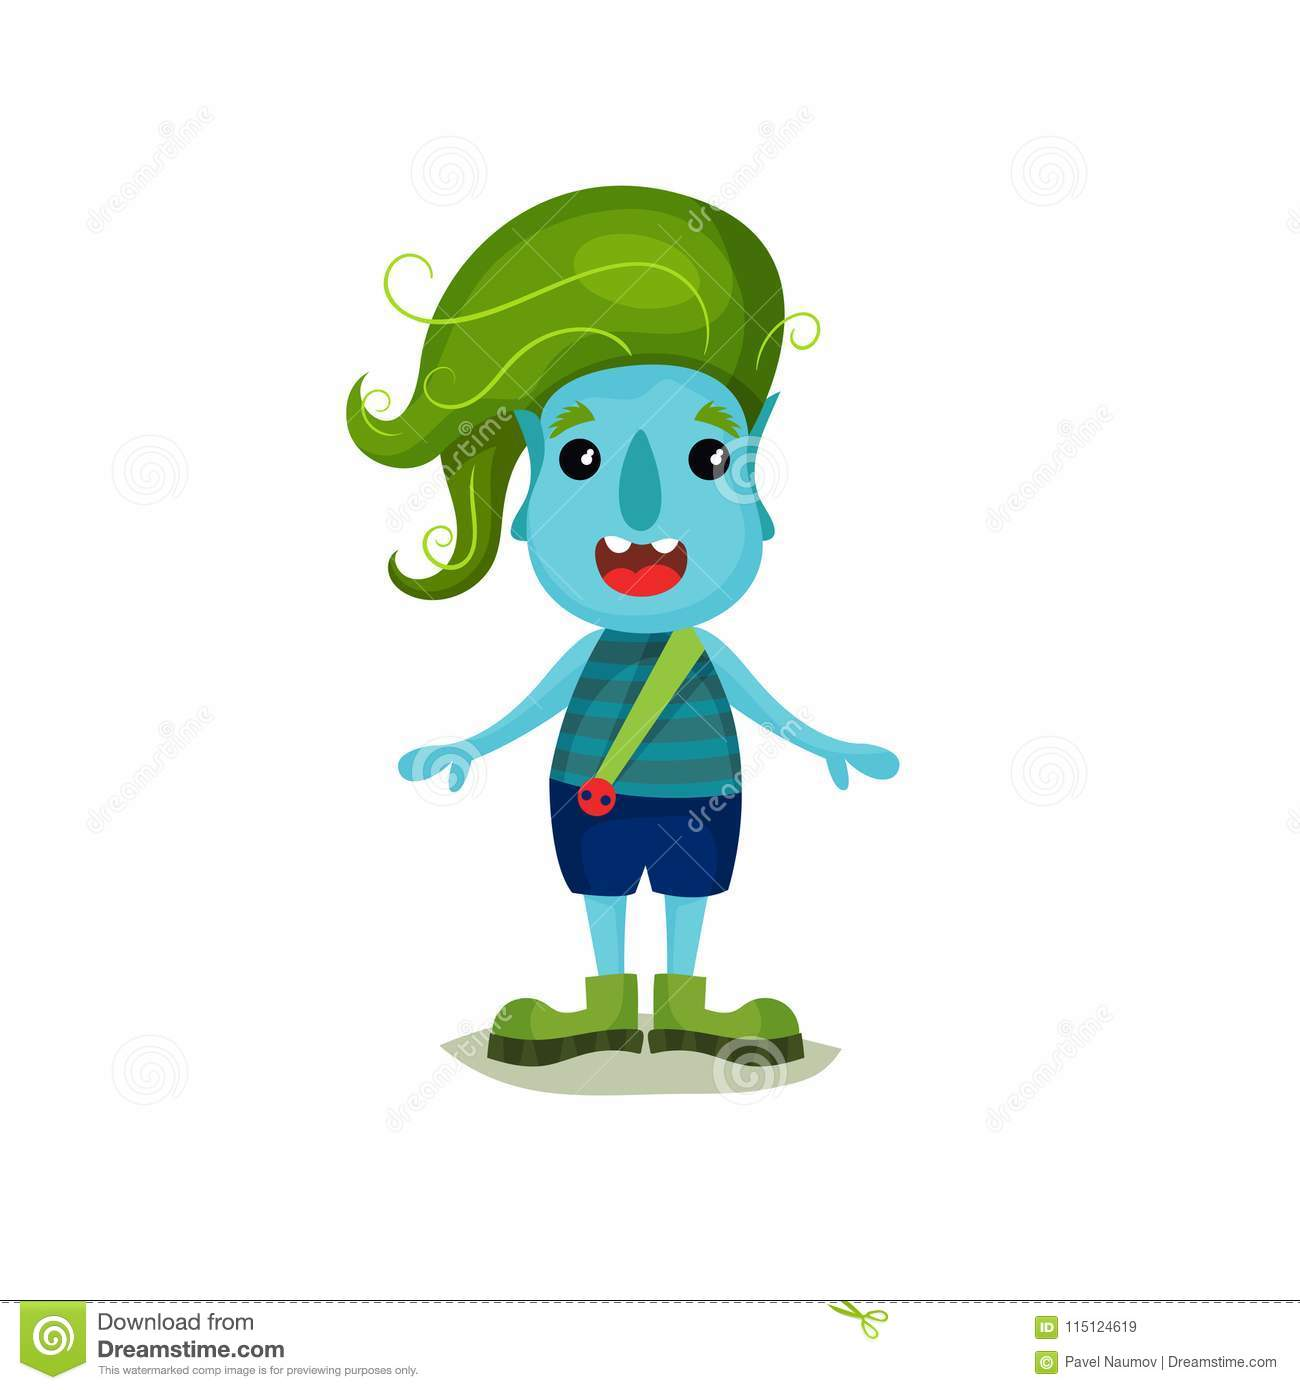 Cute Smiling Boy Troll With Green Hair And Blue Skin Funny Fairy